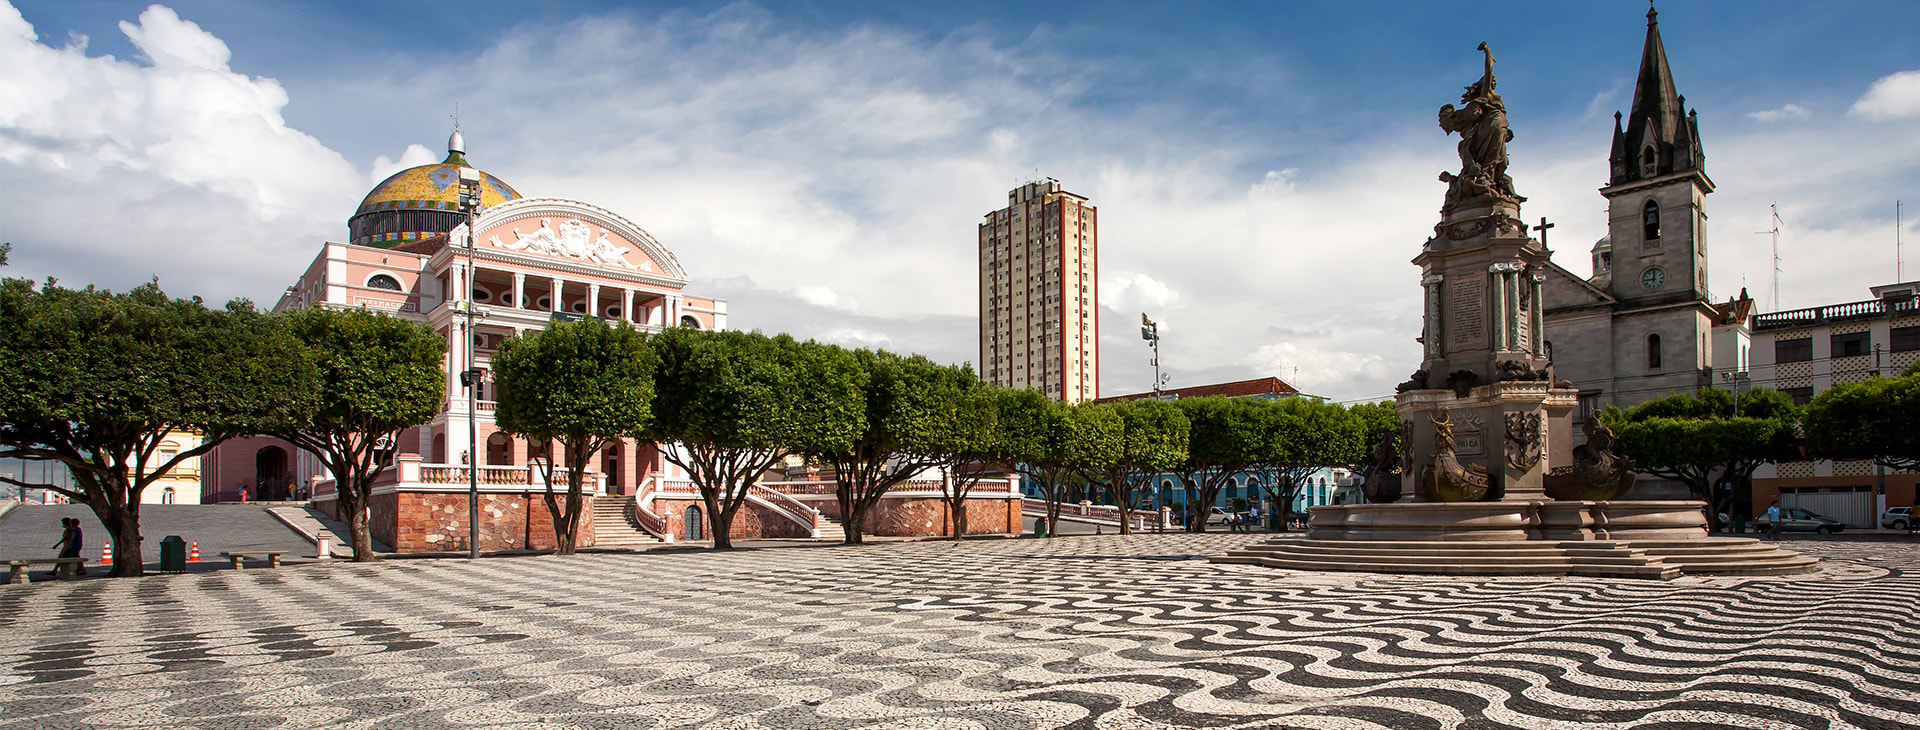 Plaza in front of Manaus Operahouse